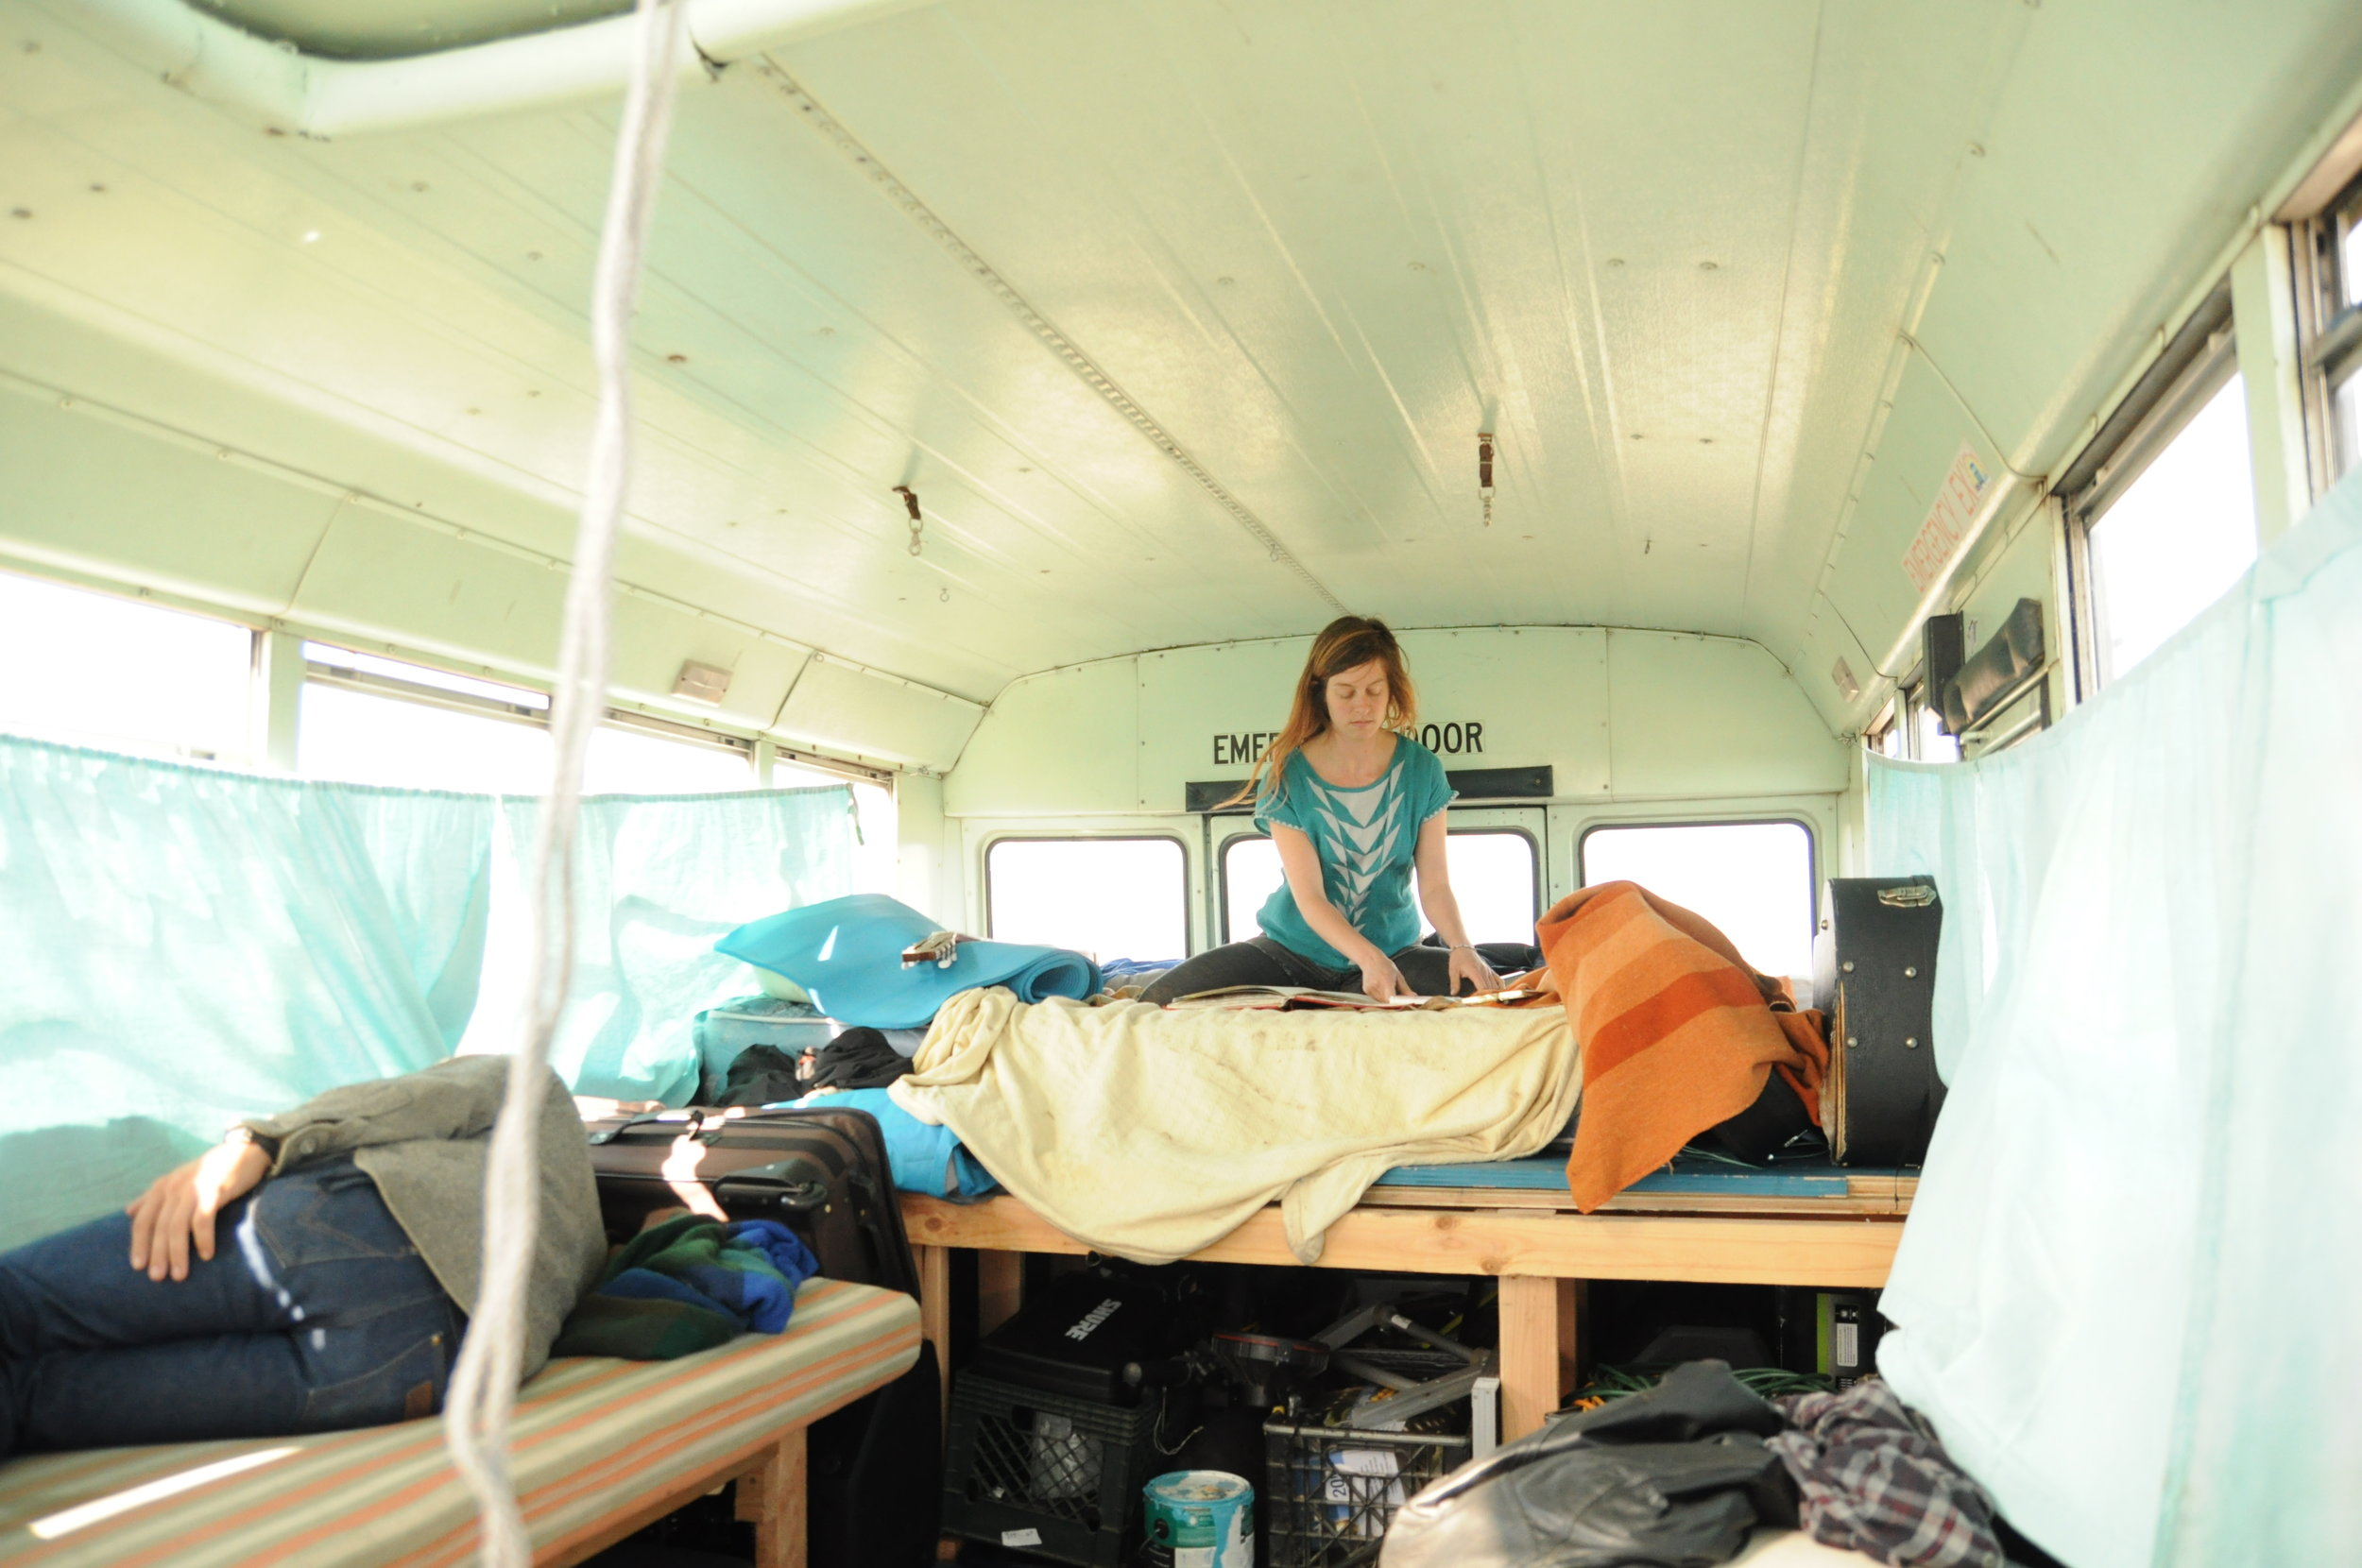 Angela does some art on the impossible back-of-the-bus mattress